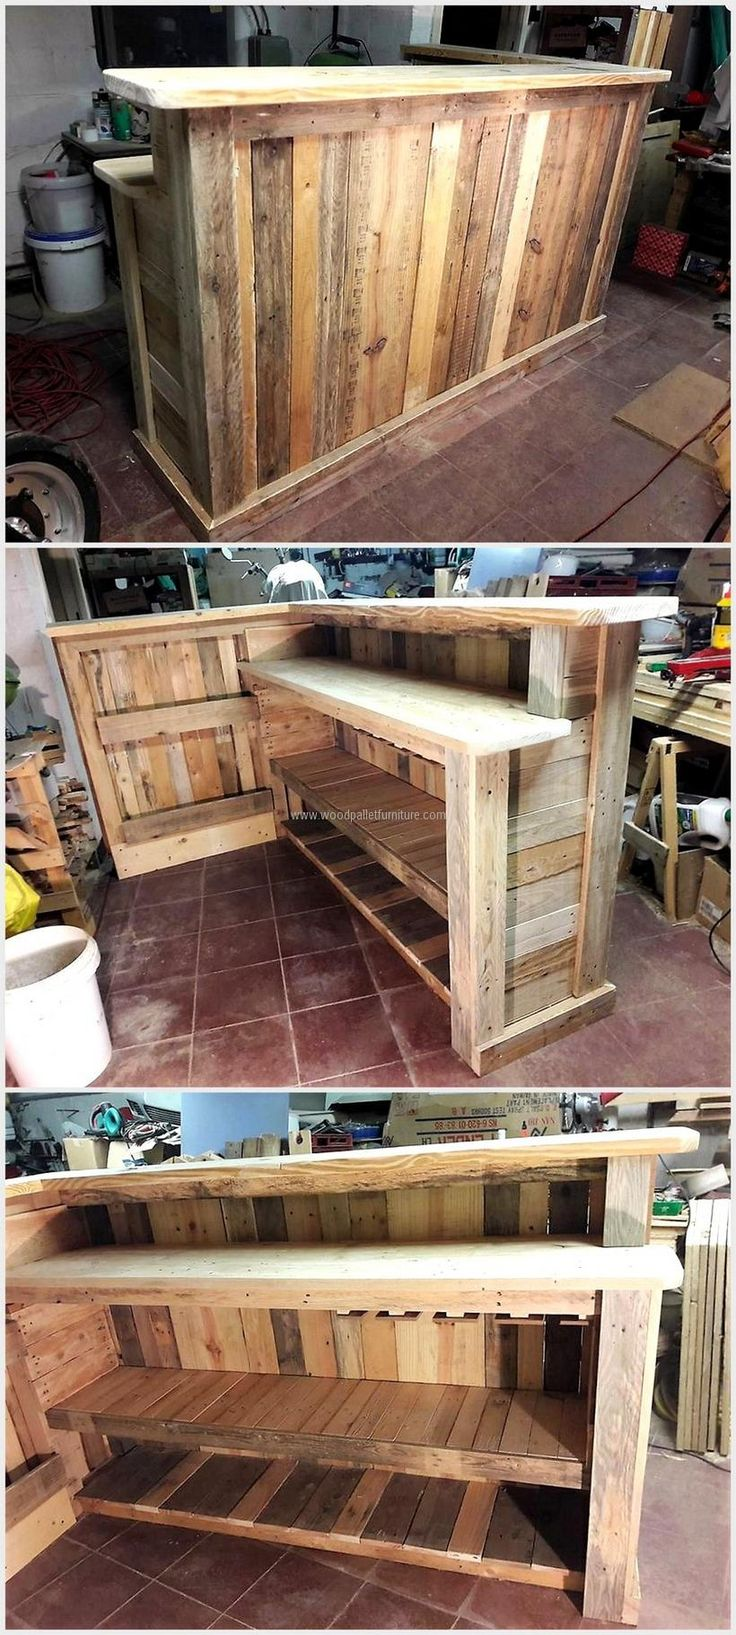 I can still remember the time when we started the wood pallet recycling, I guess the money was the biggest motivation that literally compelled us to do experiments with the wood pallet although there was a sheer inclination of ours towards the creation of art crafts. So as a matter of fact, the finances or